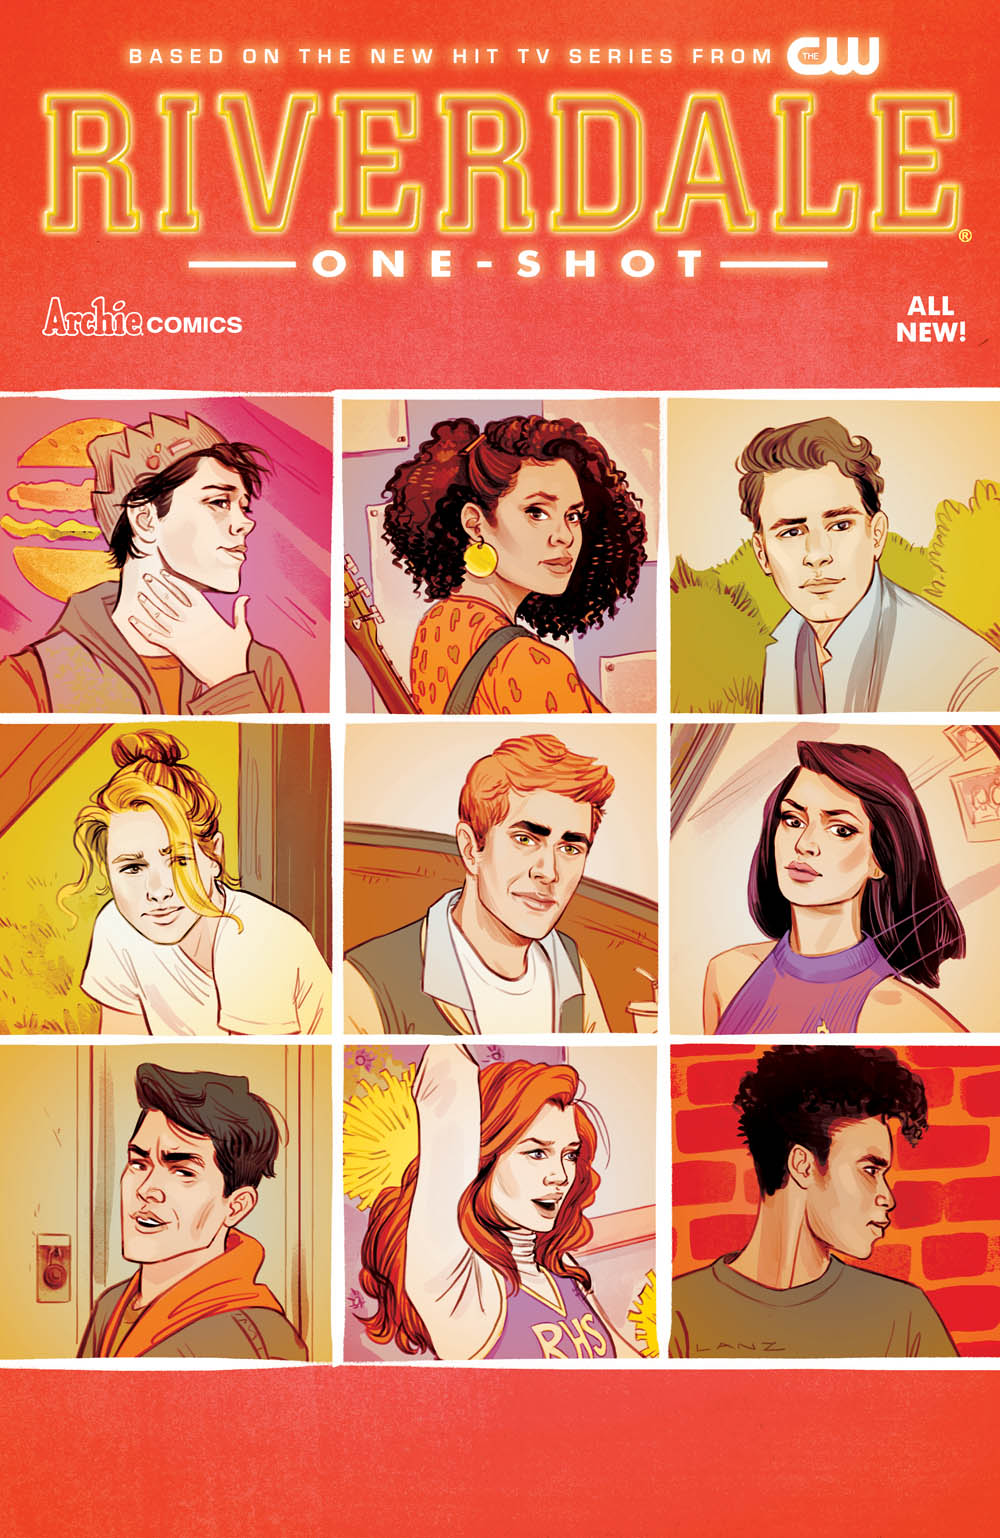 Archie Preview: Riverdale One-Shot